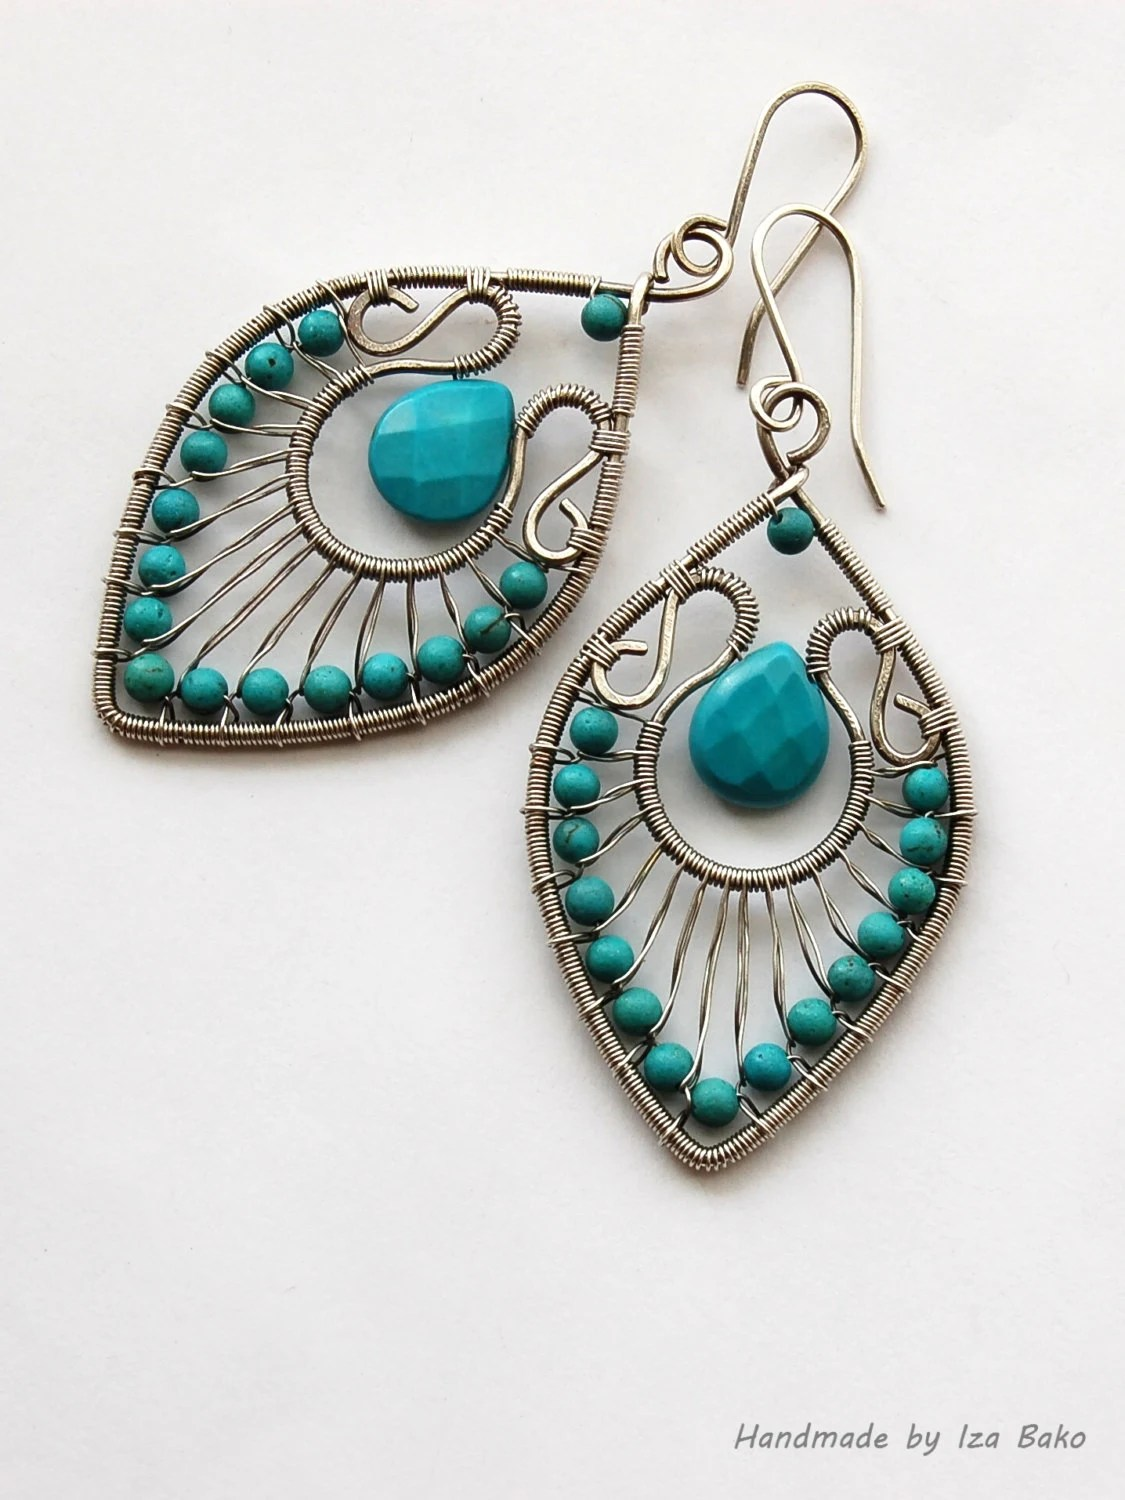 Handmade Wire Wrapped Statement Earrings With Turquoise